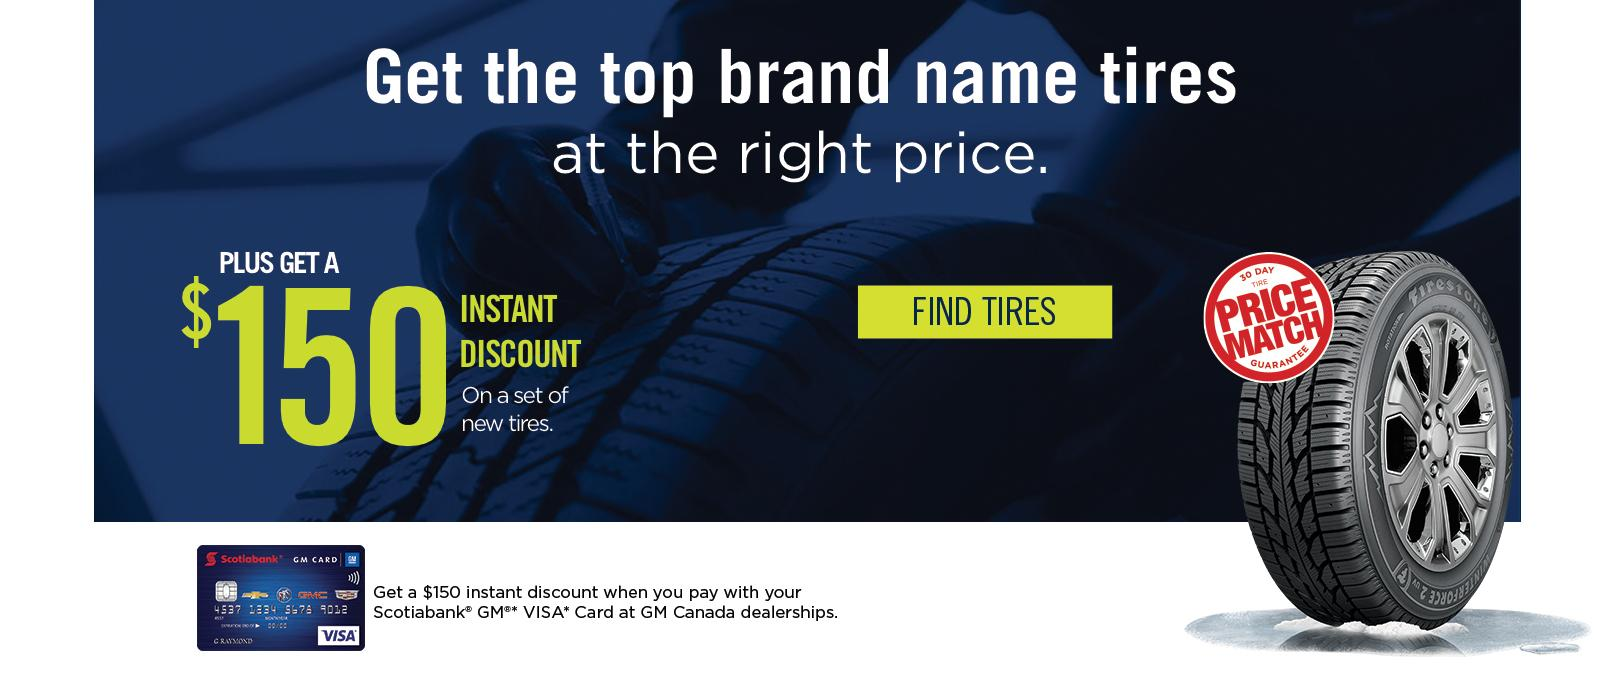 Get the top brand name tires at the right price